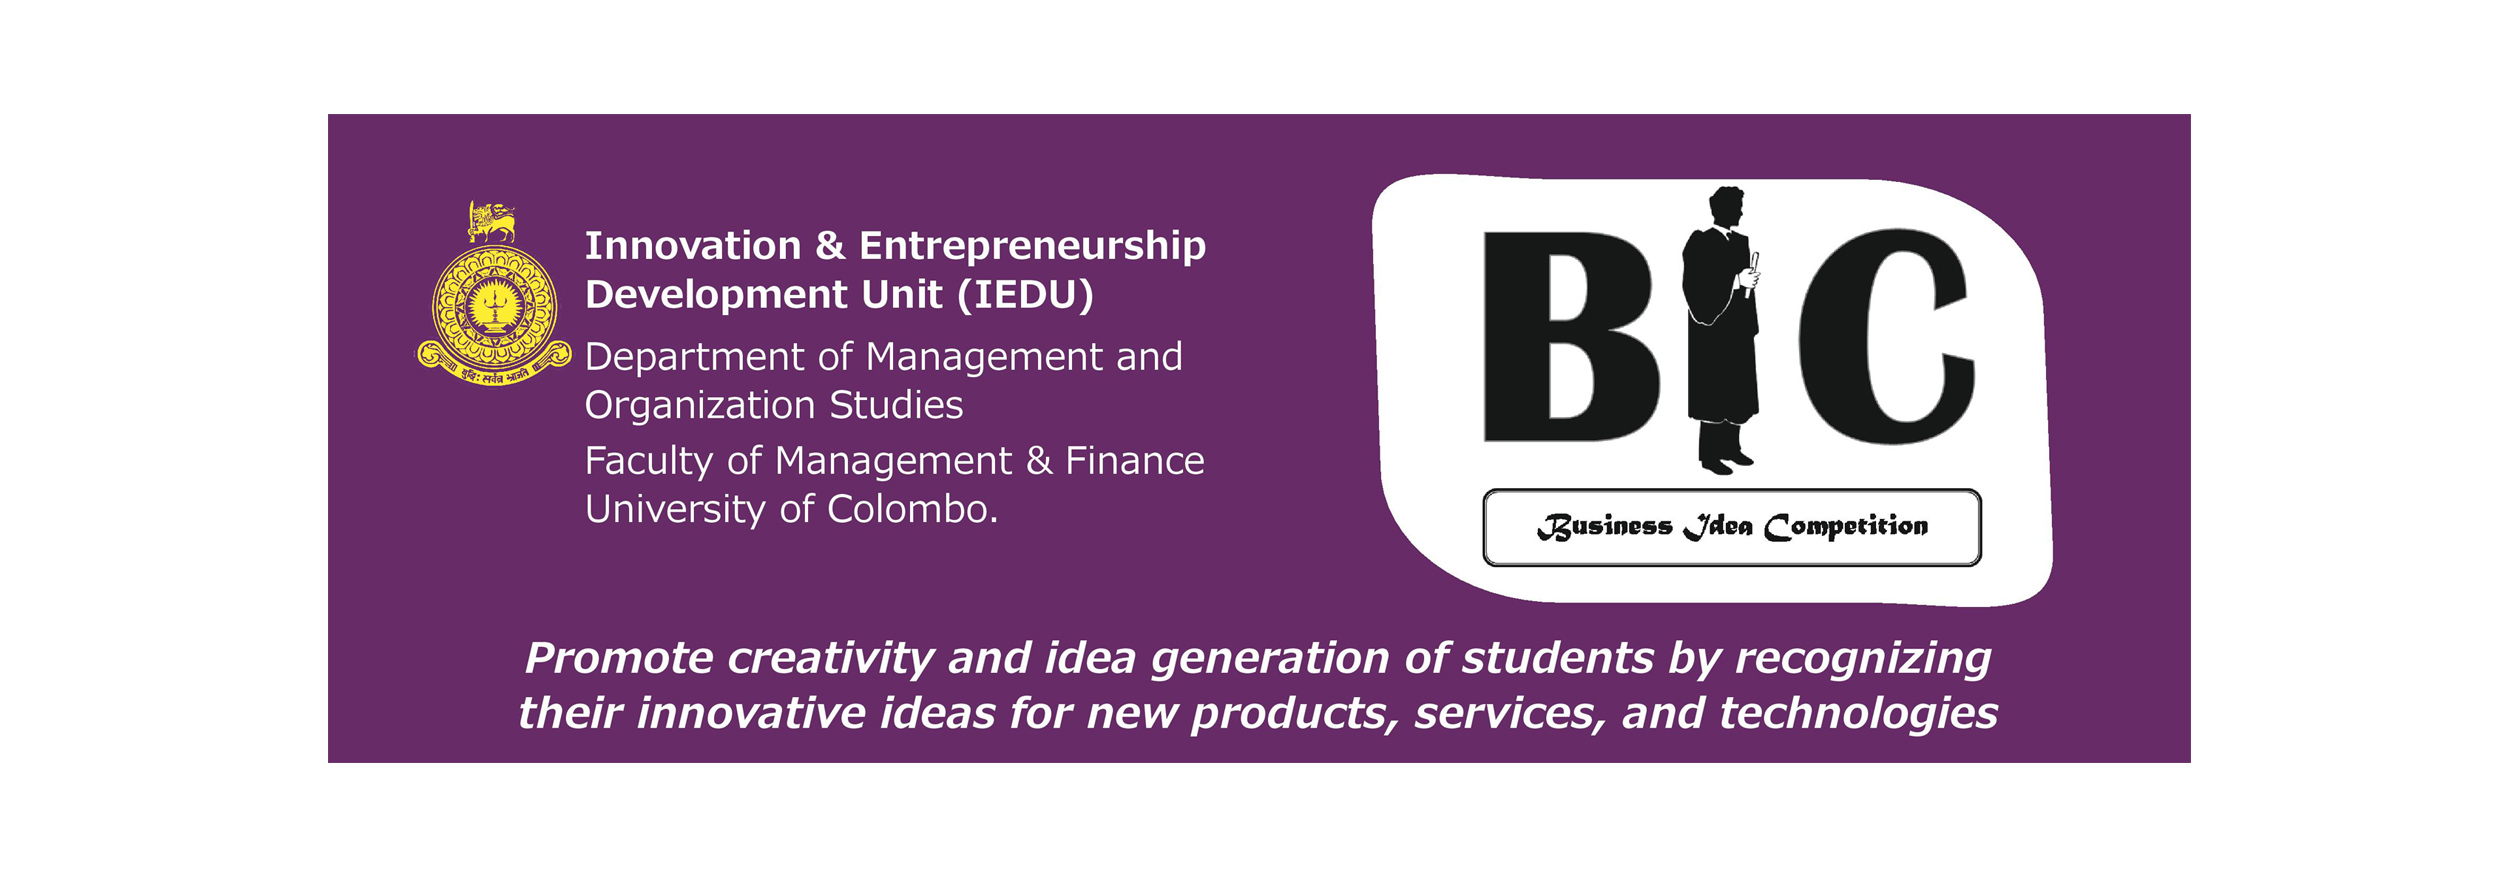 Business Idea Competition (BIC 2016)   Faculty of Management